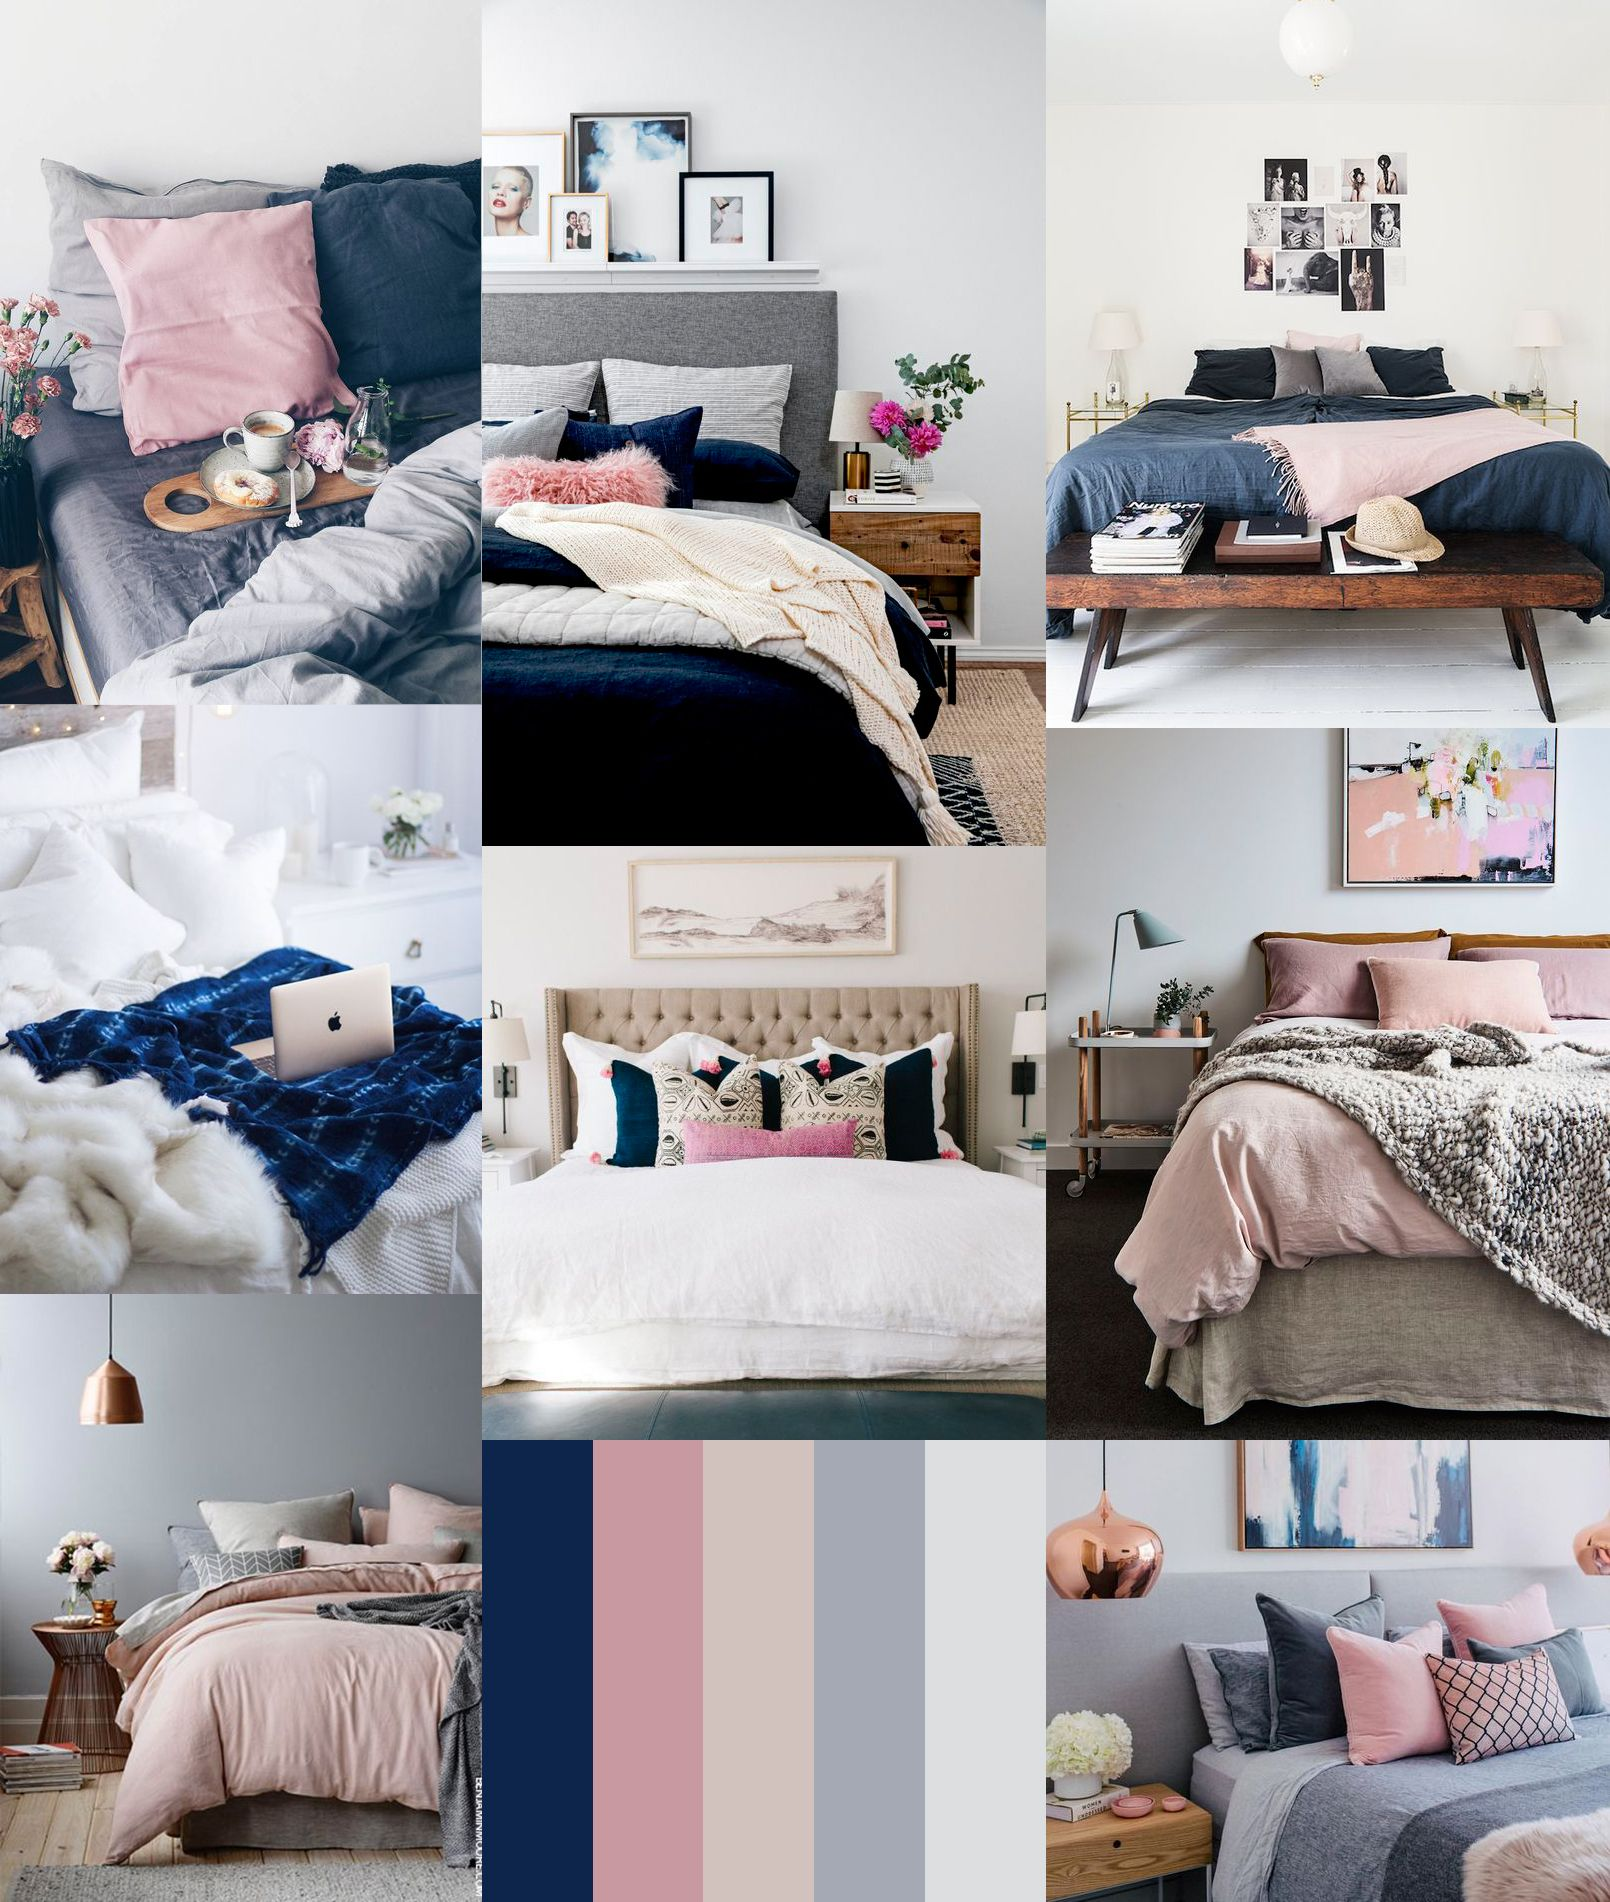 Bedding Indigo Denim Navy Slate Blue Gray Blush